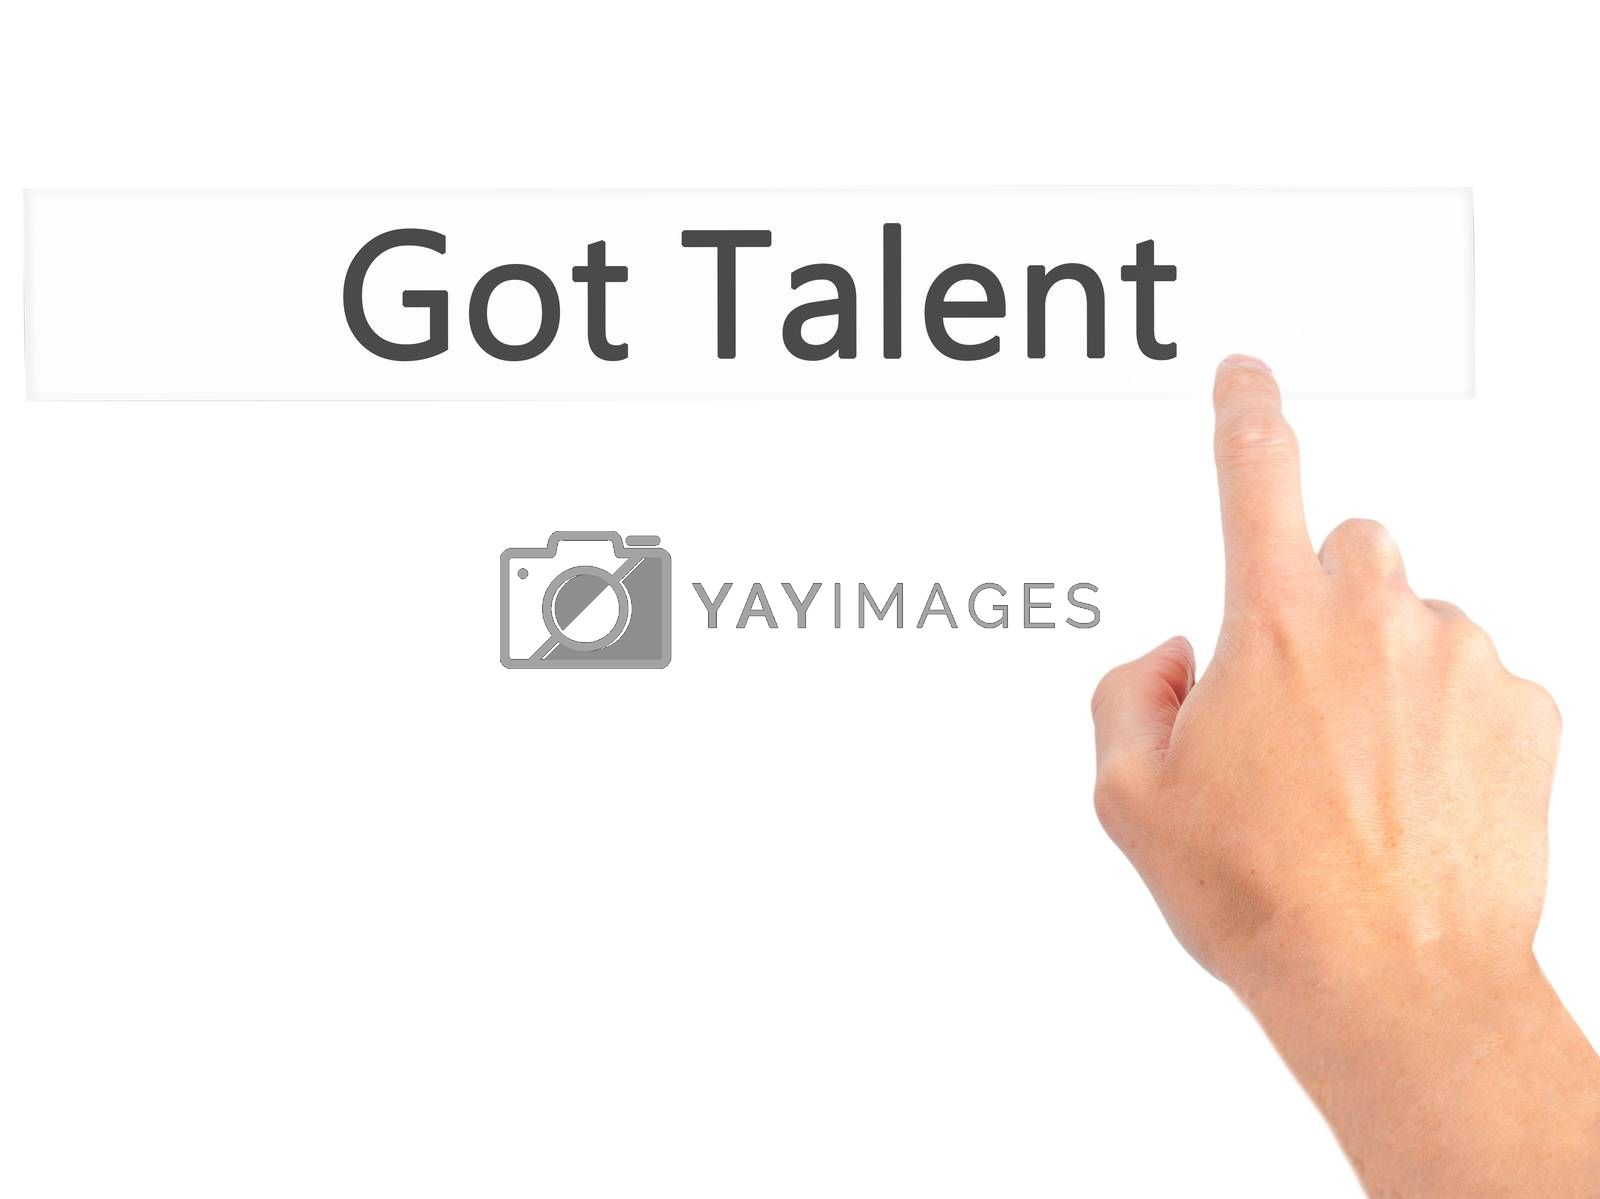 Got Talent - Hand pressing a button on blurred background concep by netsay.net